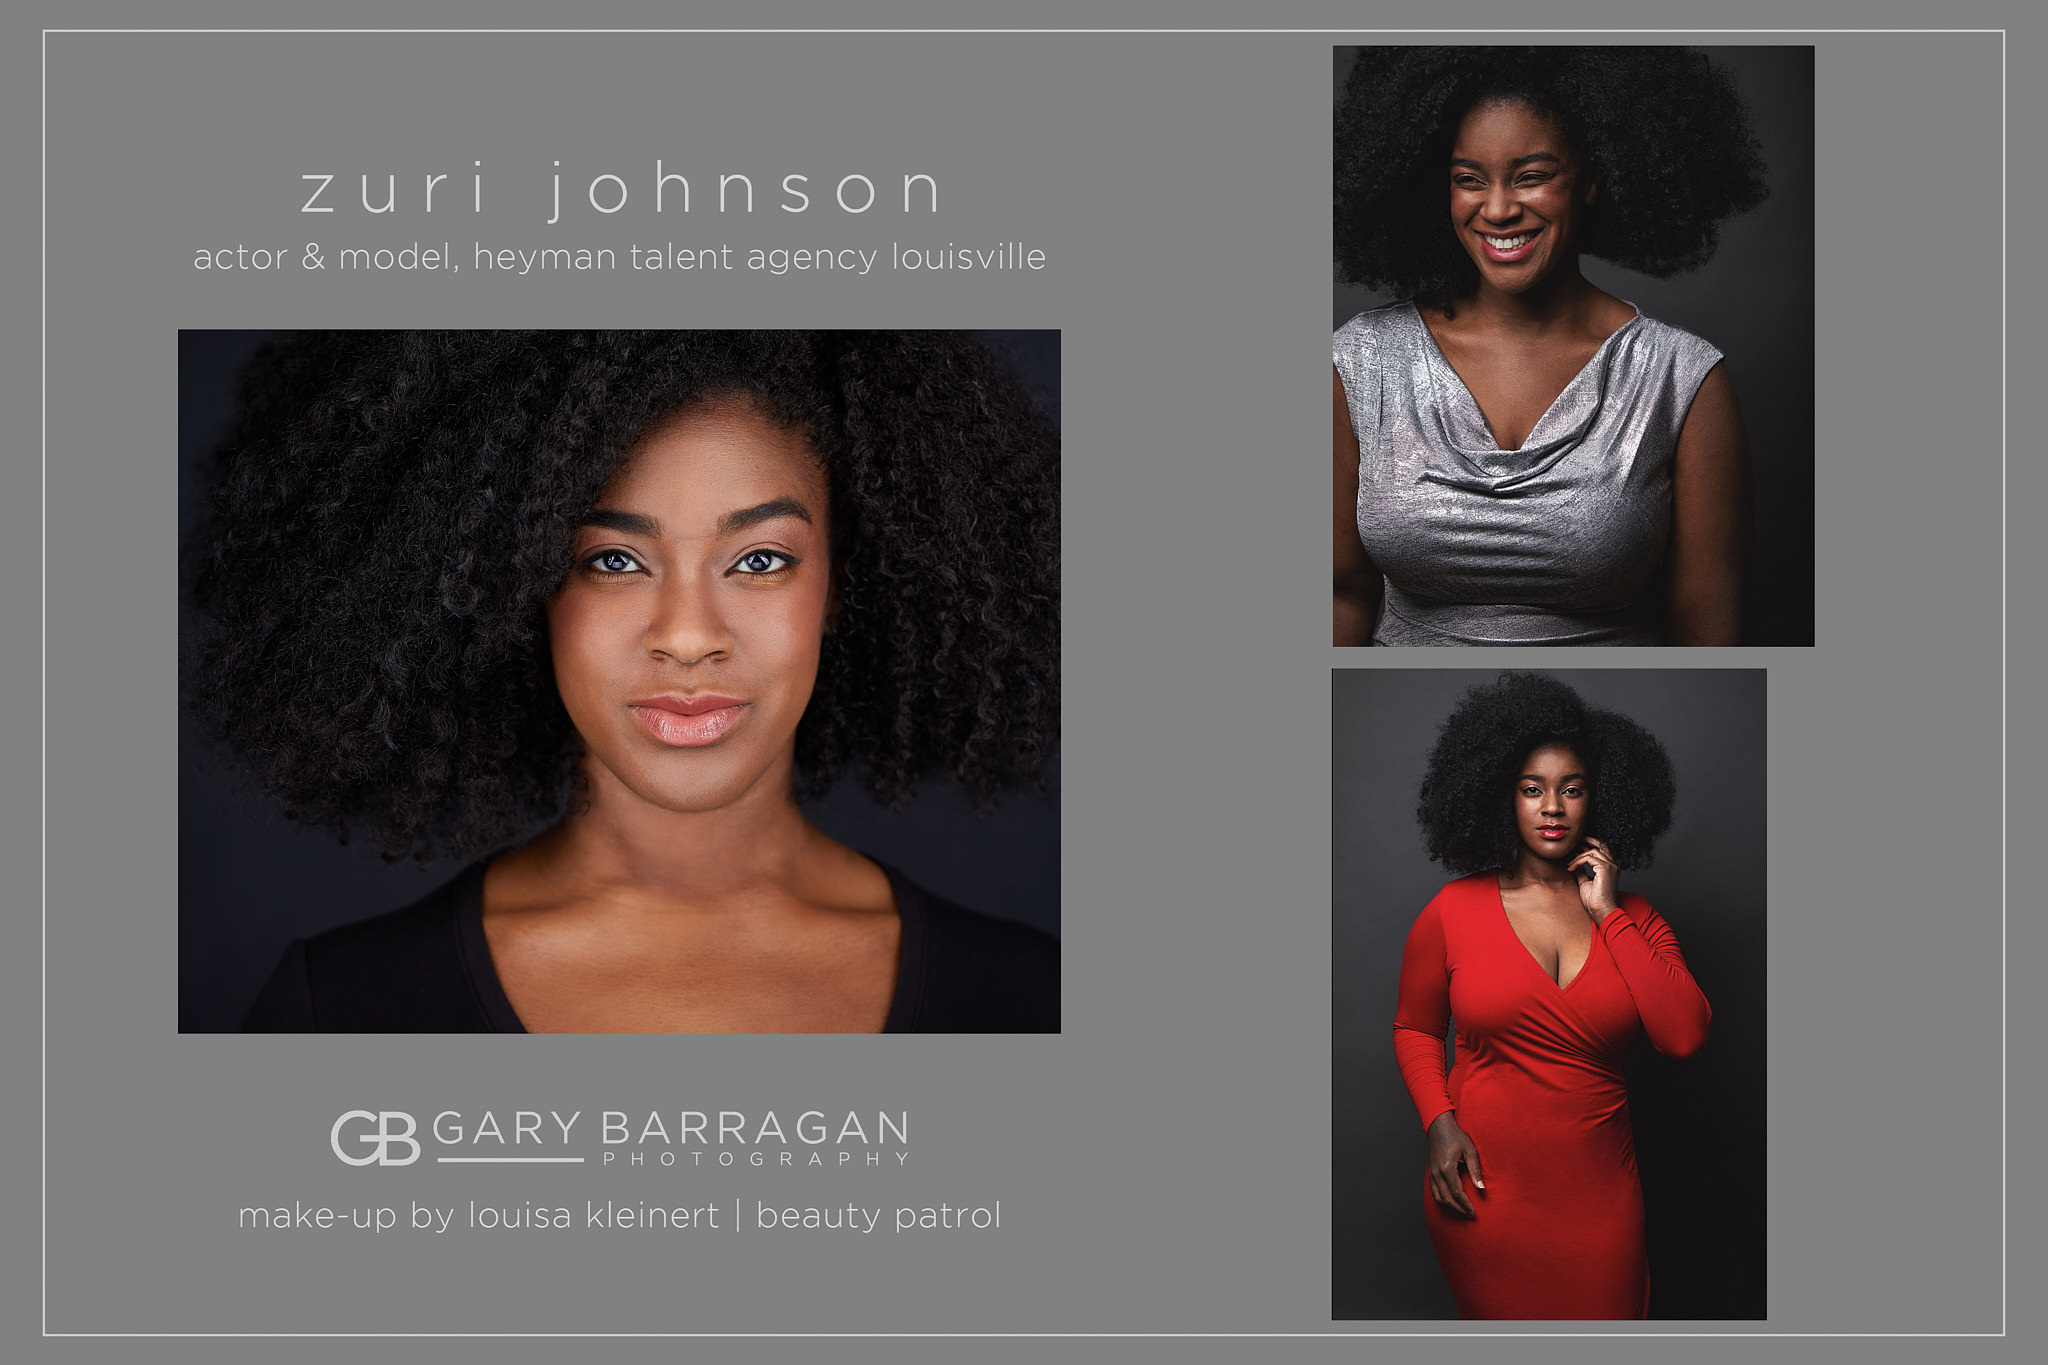 Zuri Johnson for Heyman Talent